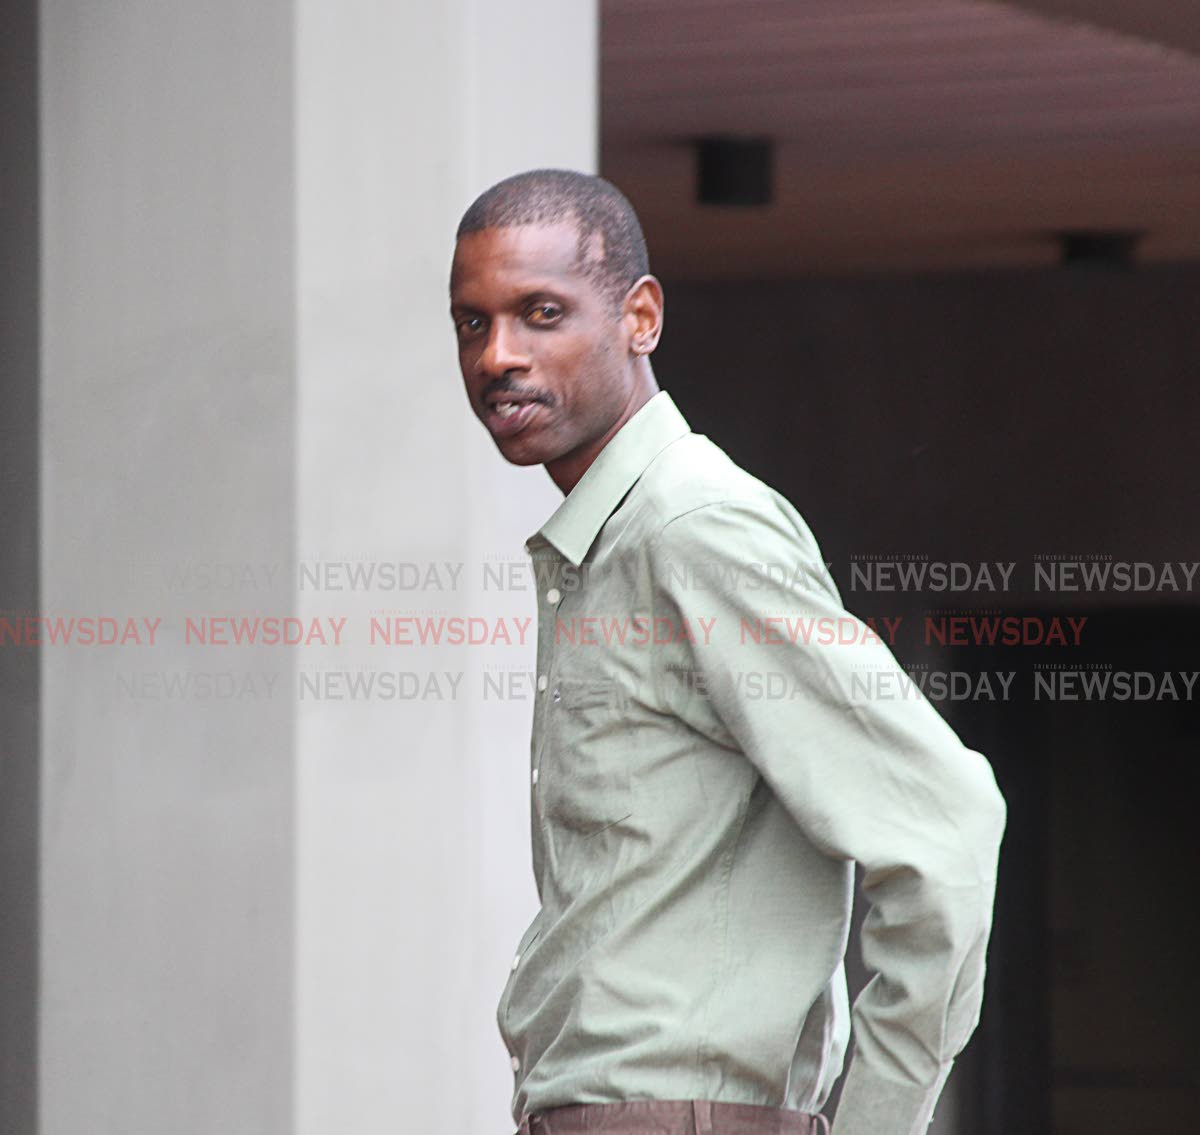 Garth Richards leaving the Hall of Justice yesterday. Photo by Enrique Assoon.